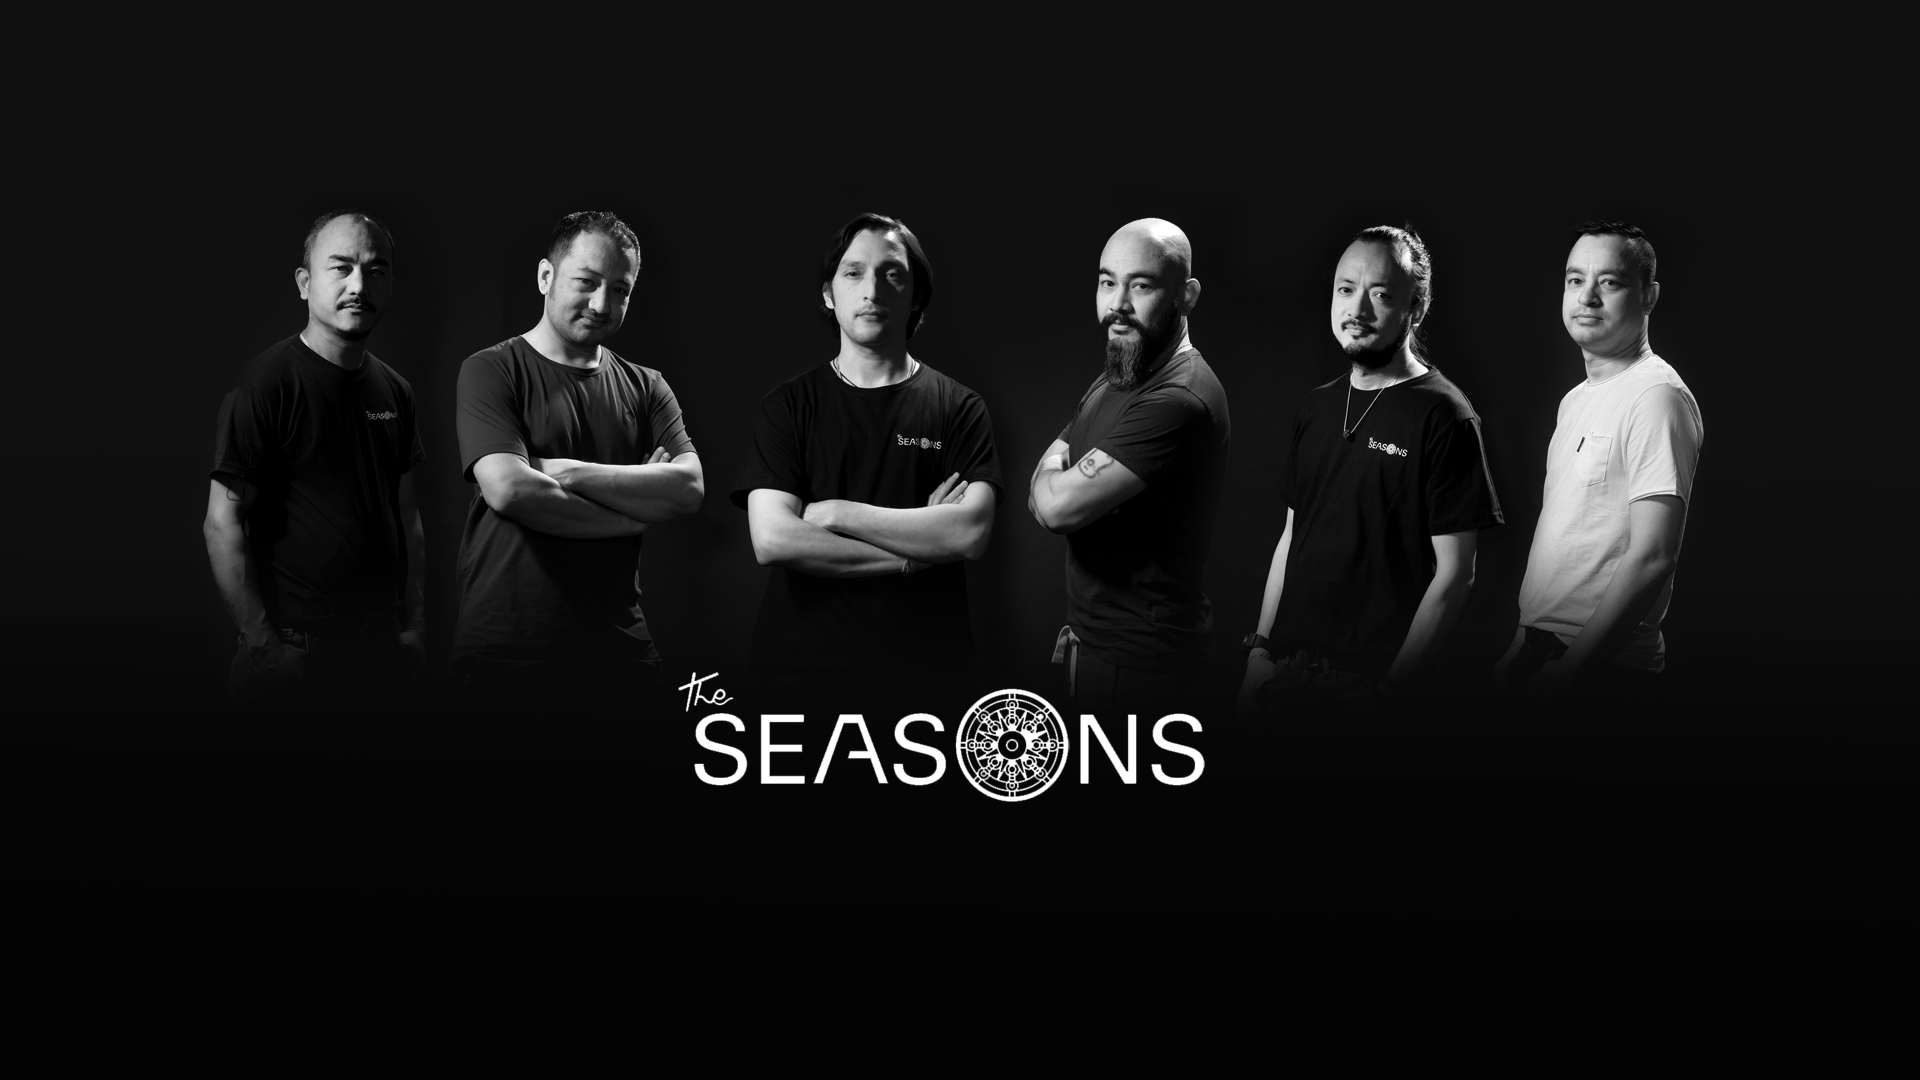 The Seasons Band